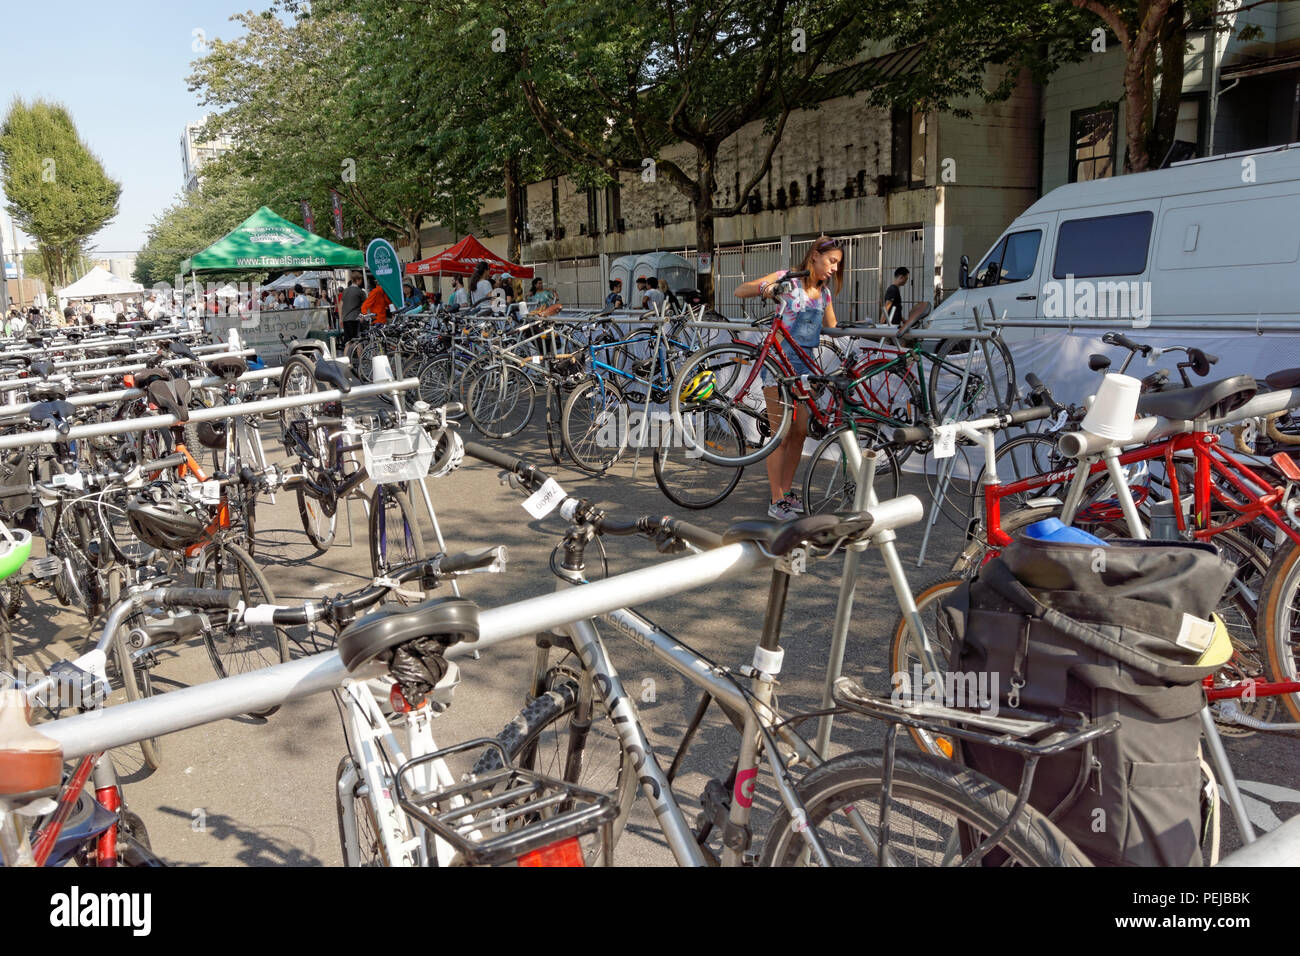 Bicycles and female worker in a free and secure Bicycle Valet  bicycle parking lot, Vancouver, BC, Canada - Stock Image